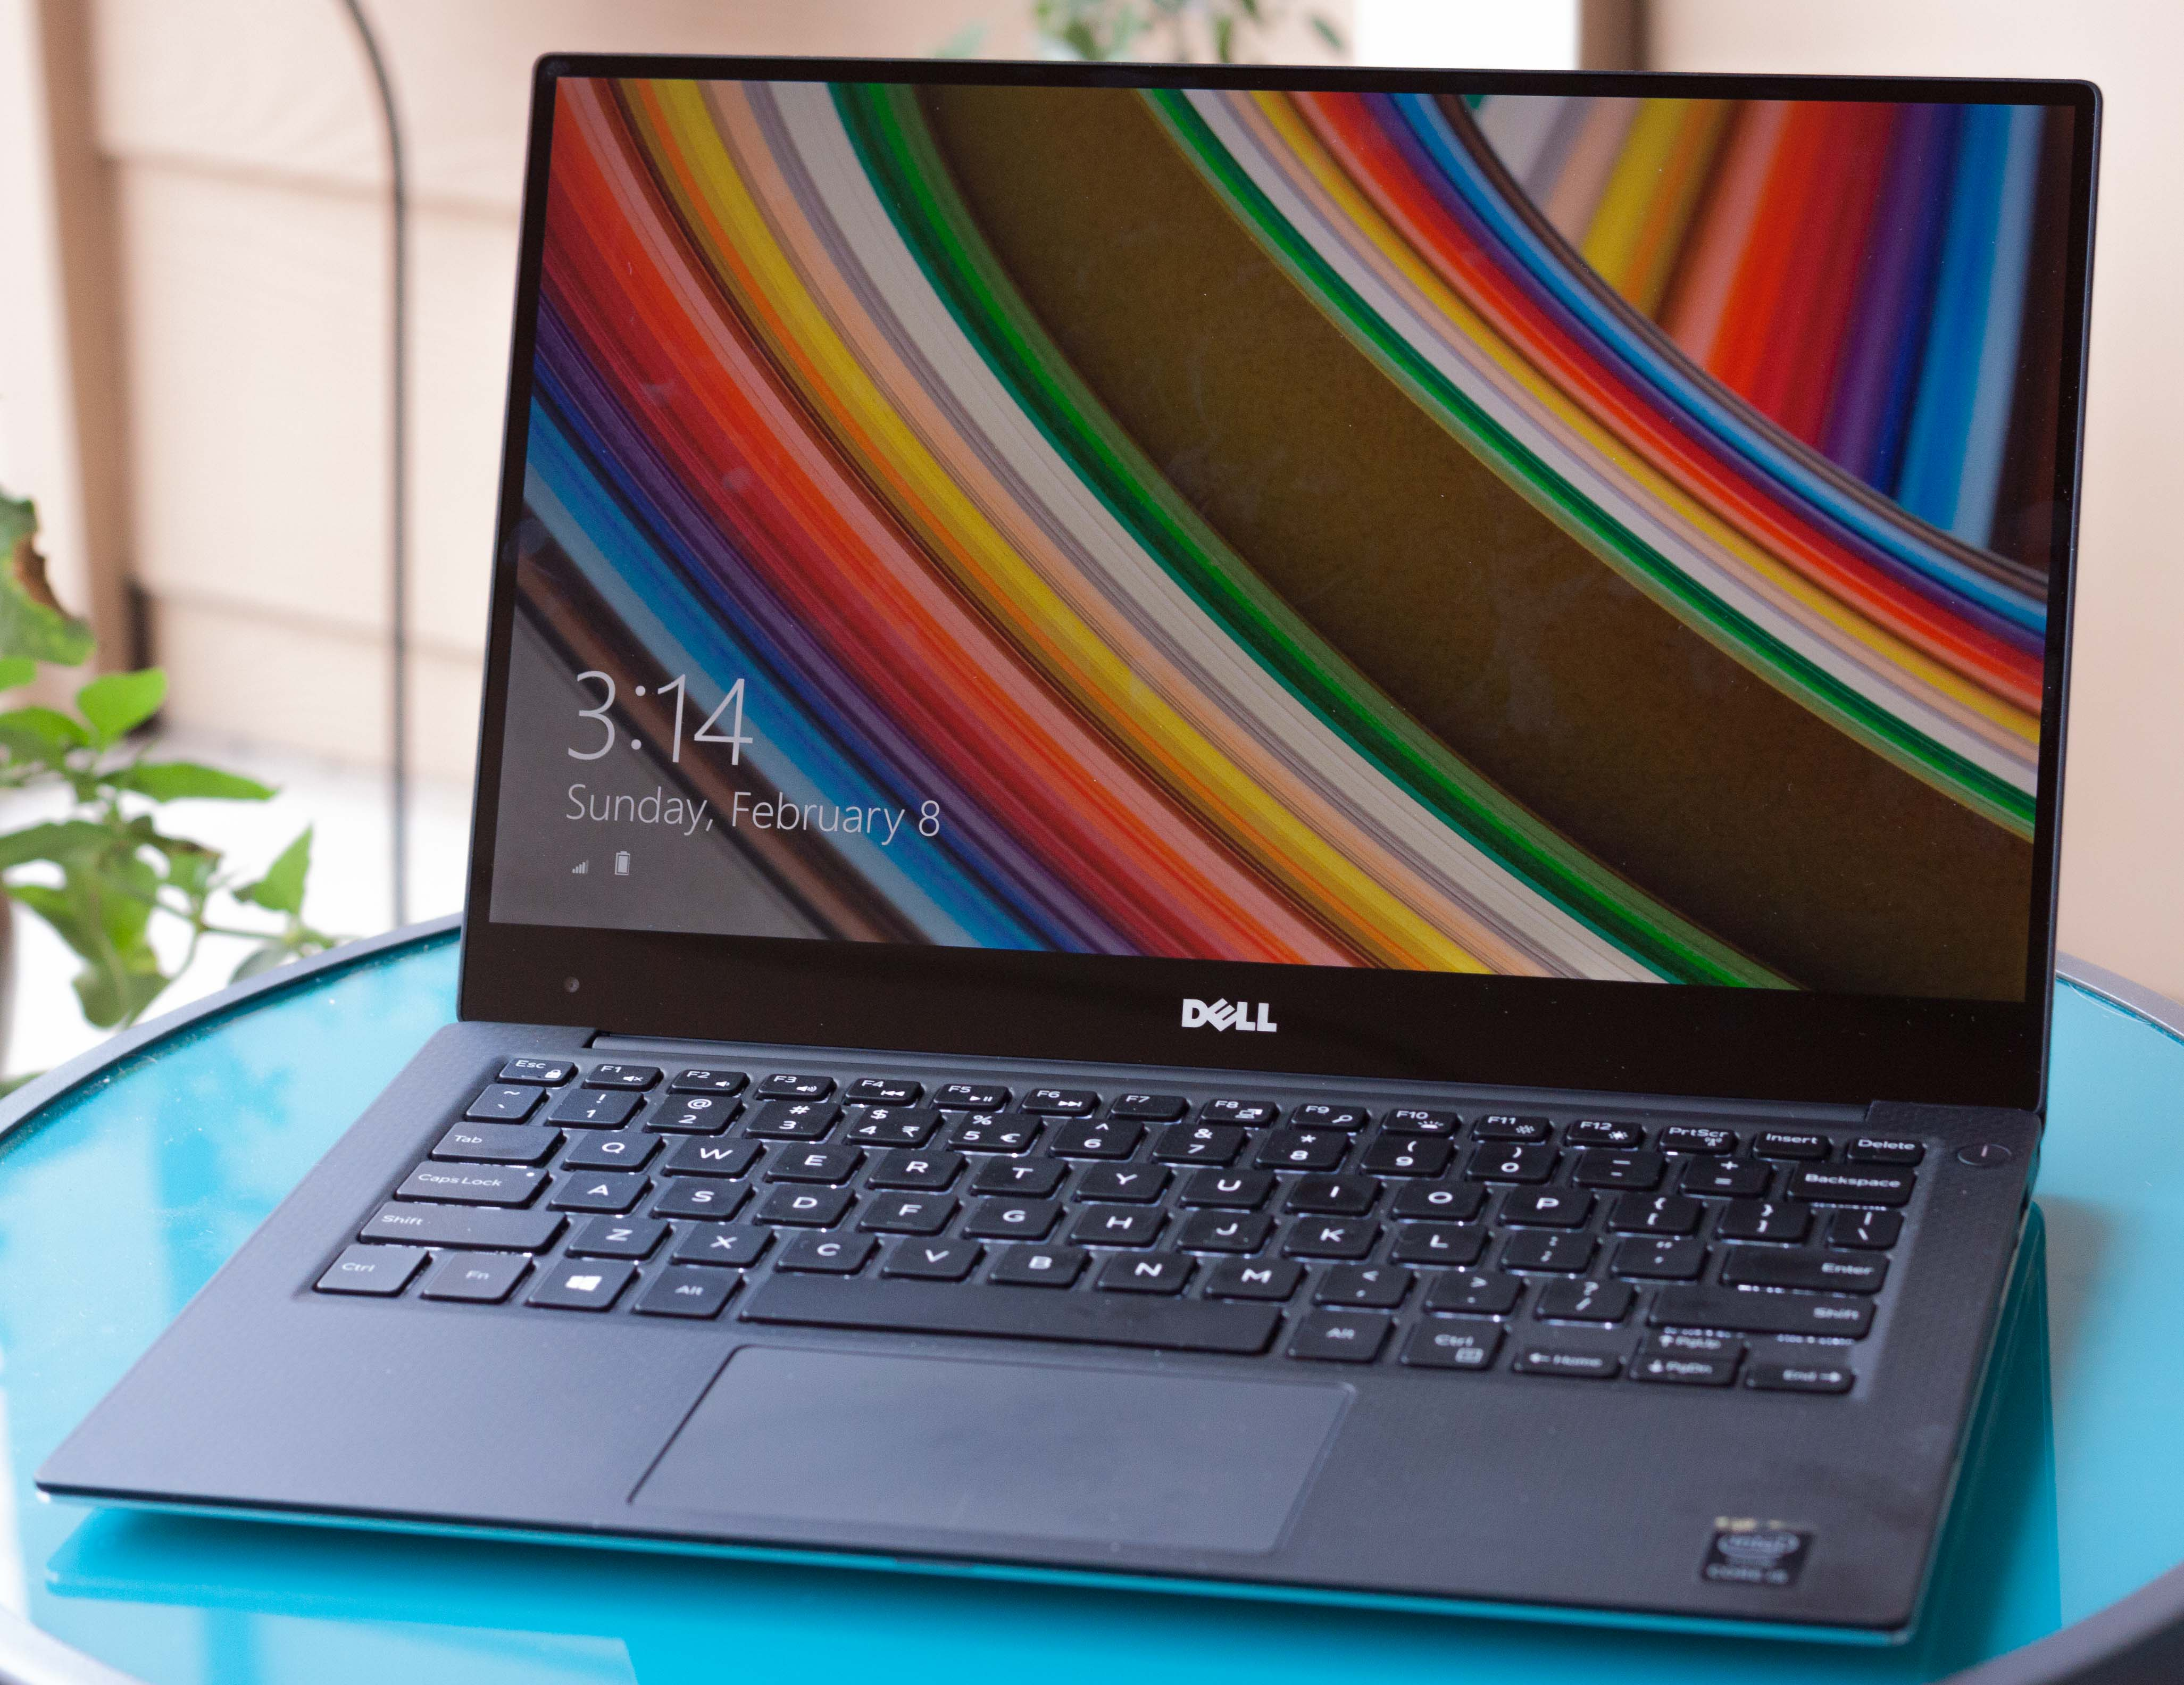 Dell's XPS 13 – lightweight laptop